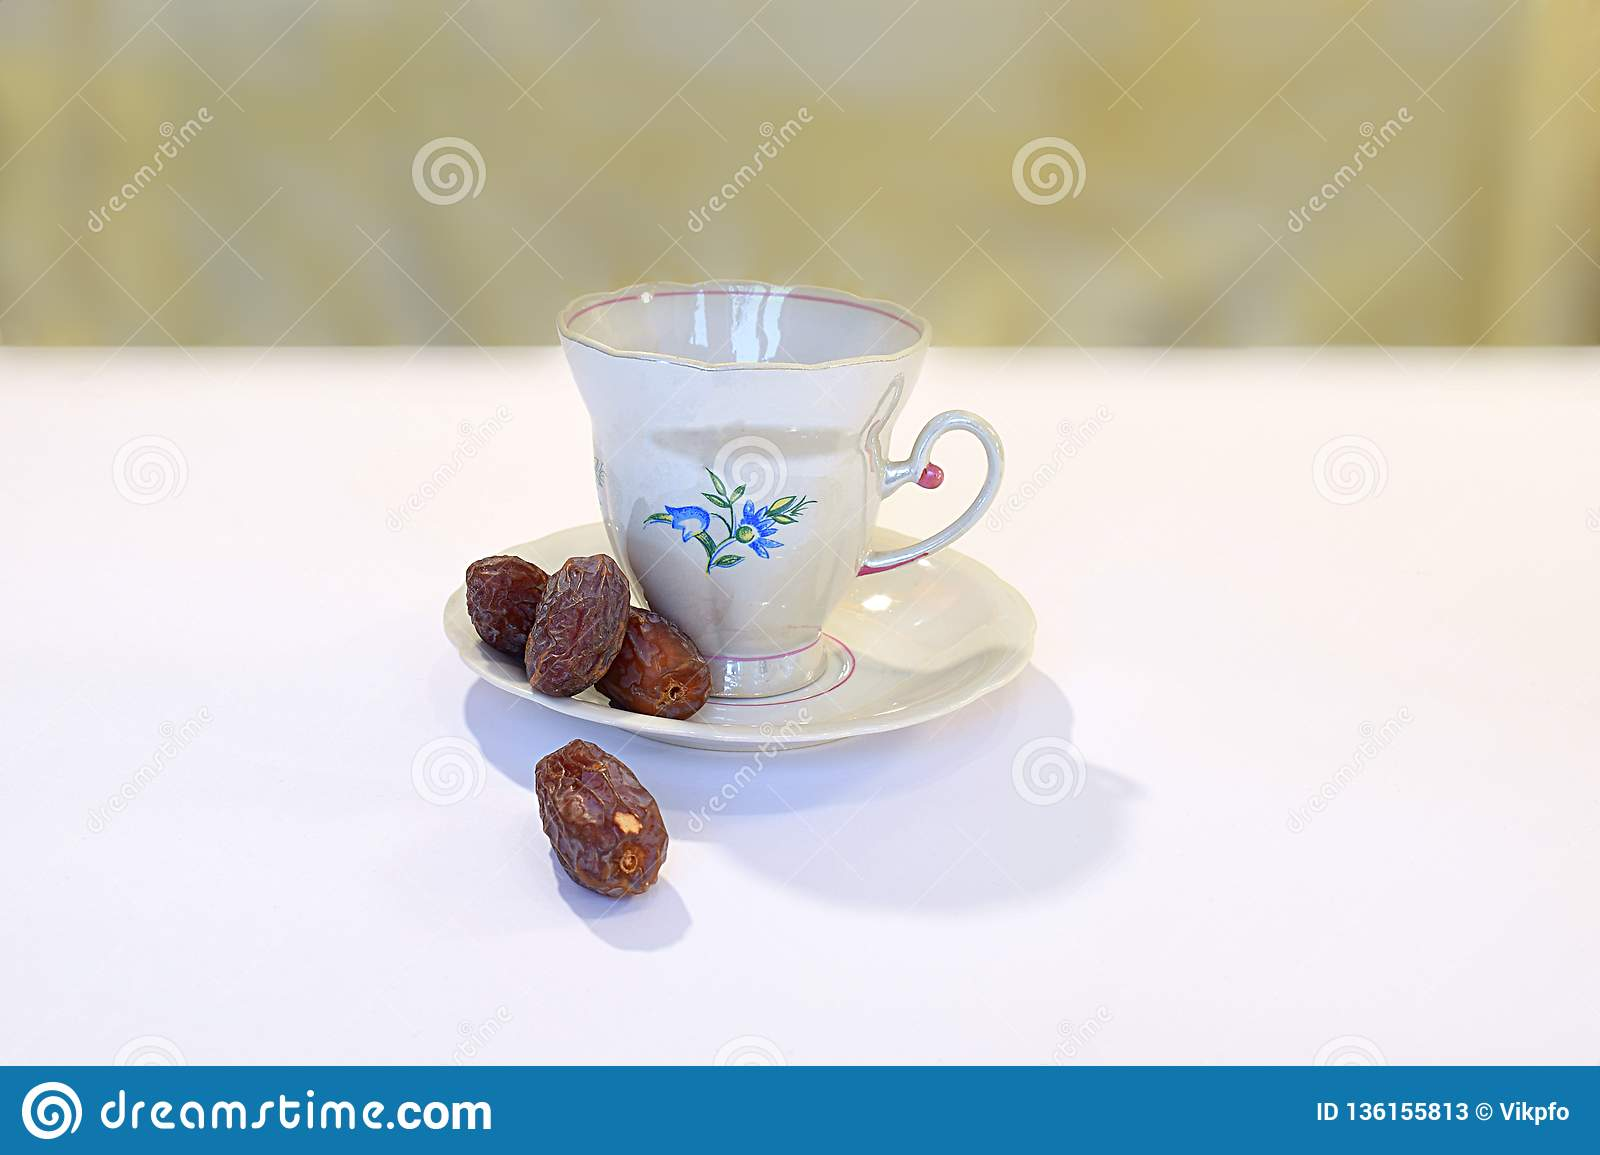 Dates and saucer with a cup on a white table